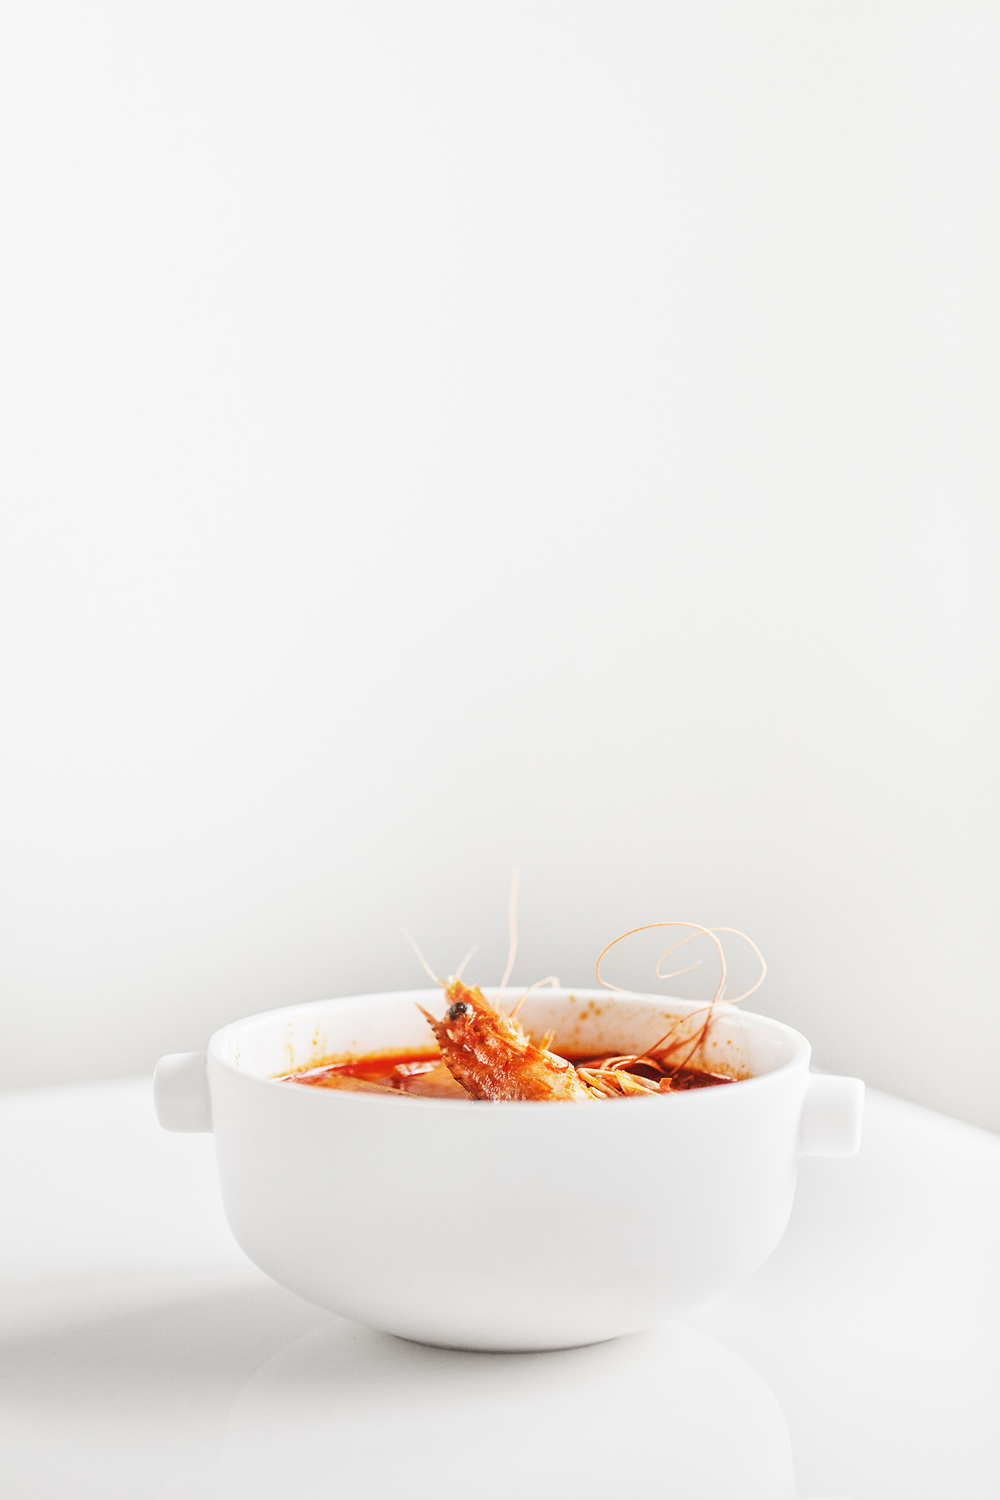 Prawns Tom Yum Soup | Ceramic Bowl from  Serax